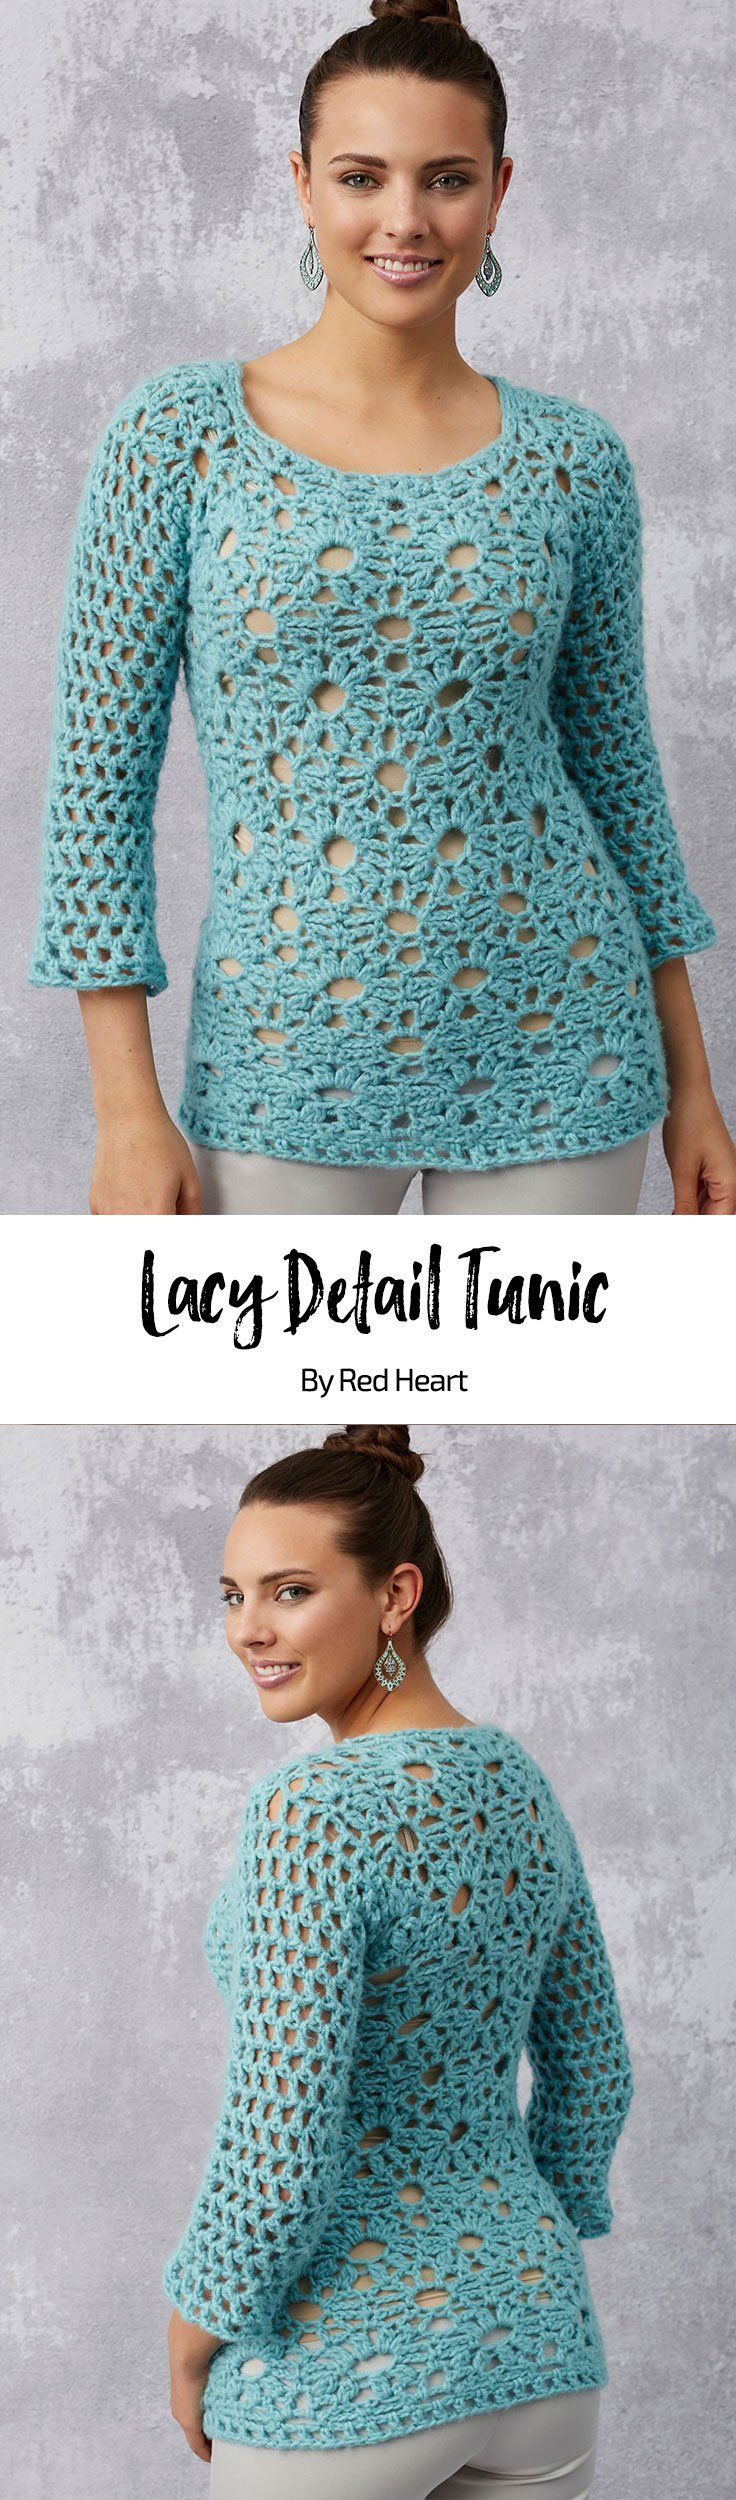 261 best crochet patterns images on pinterest crochet mittens lacy detail tunic free crochet pattern in dreamy bankloansurffo Image collections